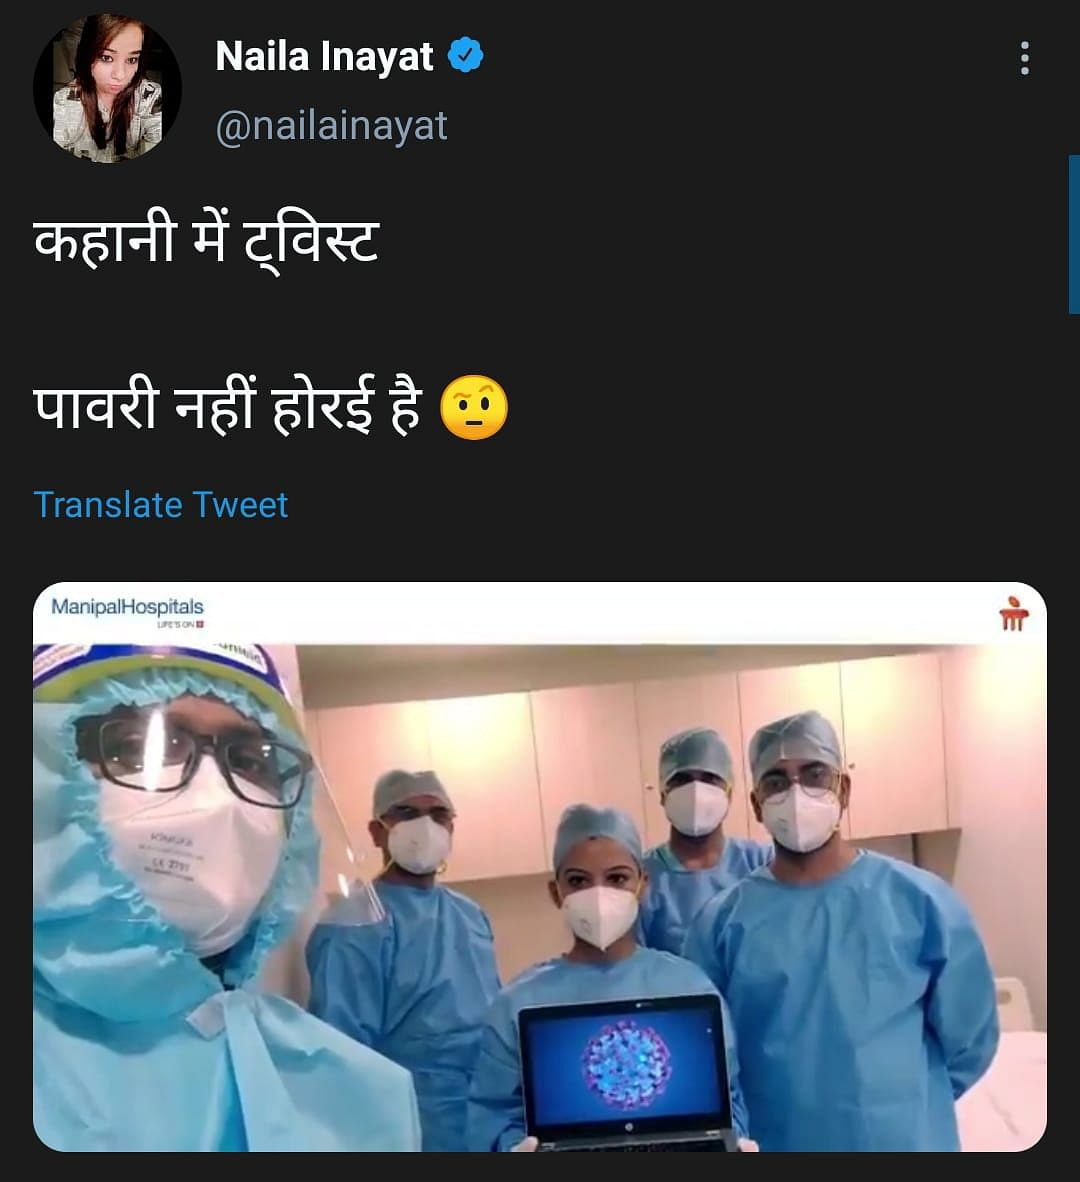 Manipal Hospital Doctors Share 'Pawri' Video, But With a Message